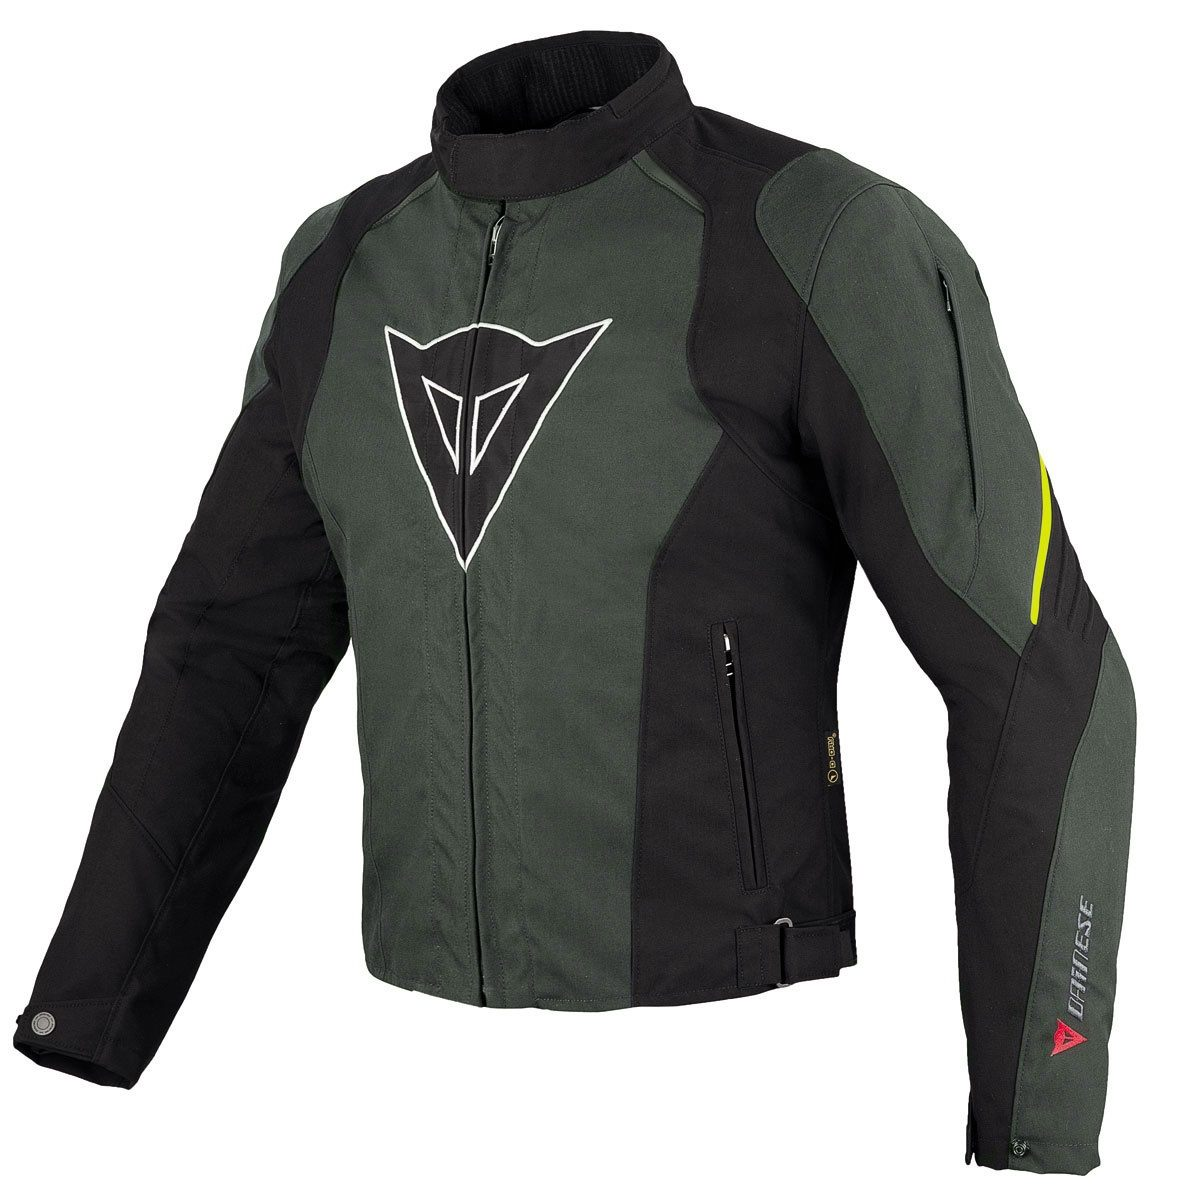 Dainese Laguna Seca D-Dry Jacket - Black/Grey/Yellow